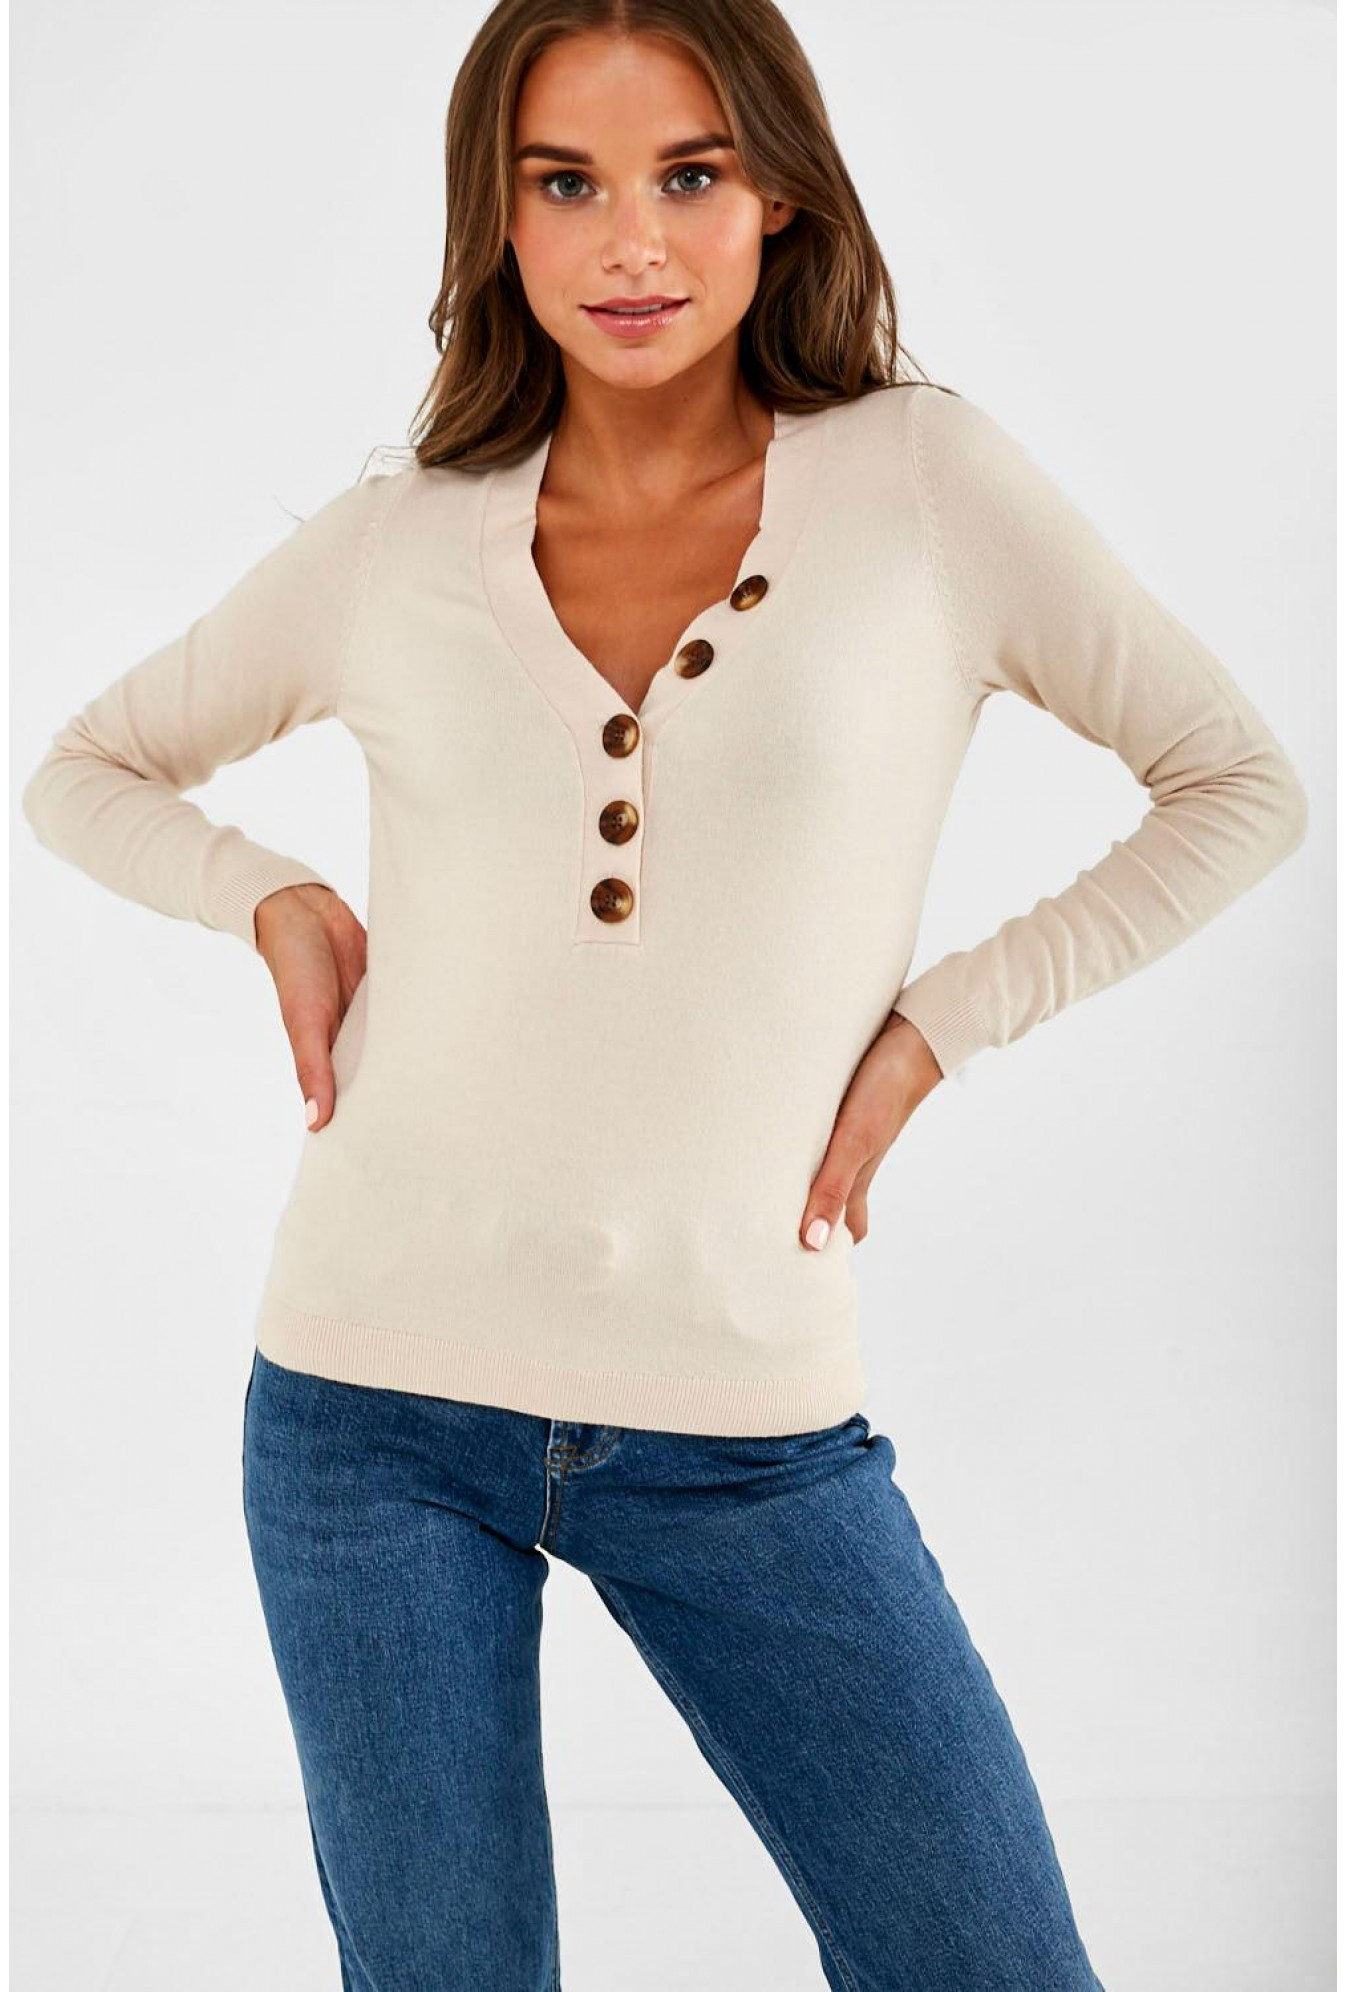 finest selection 2a42f 46c7b Chip Pullover with Button Detail in Beige